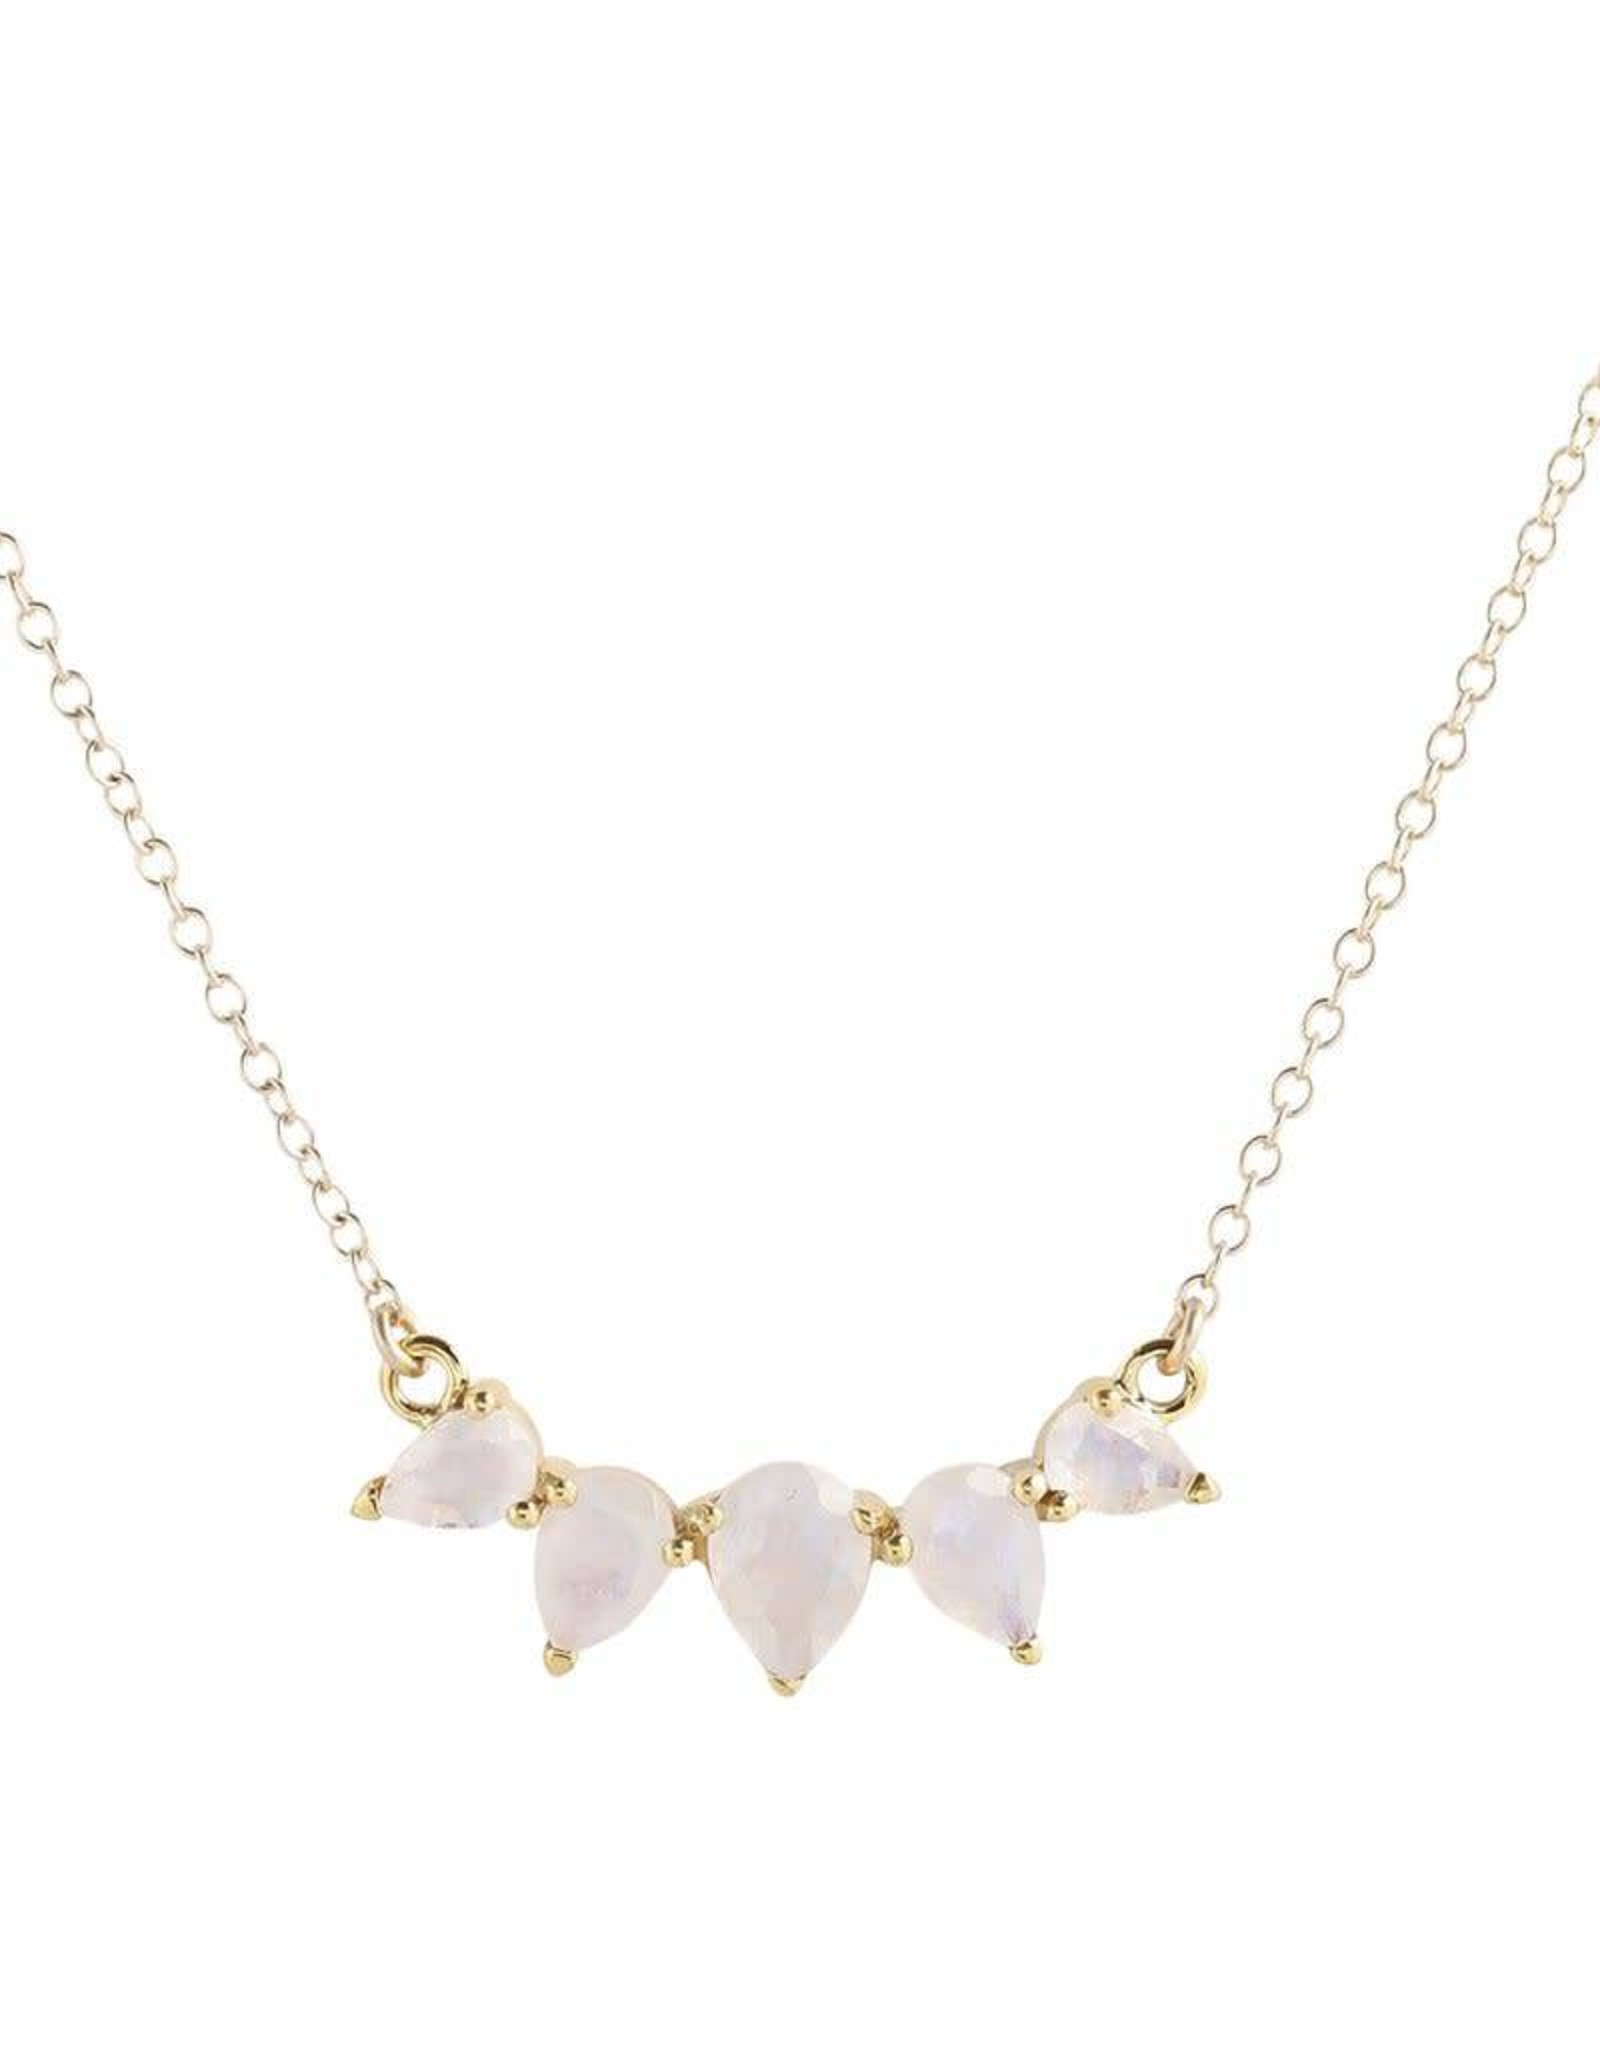 LEAH ALEXANDRA SUNNY necklace, MOONSTONE, 14k gold